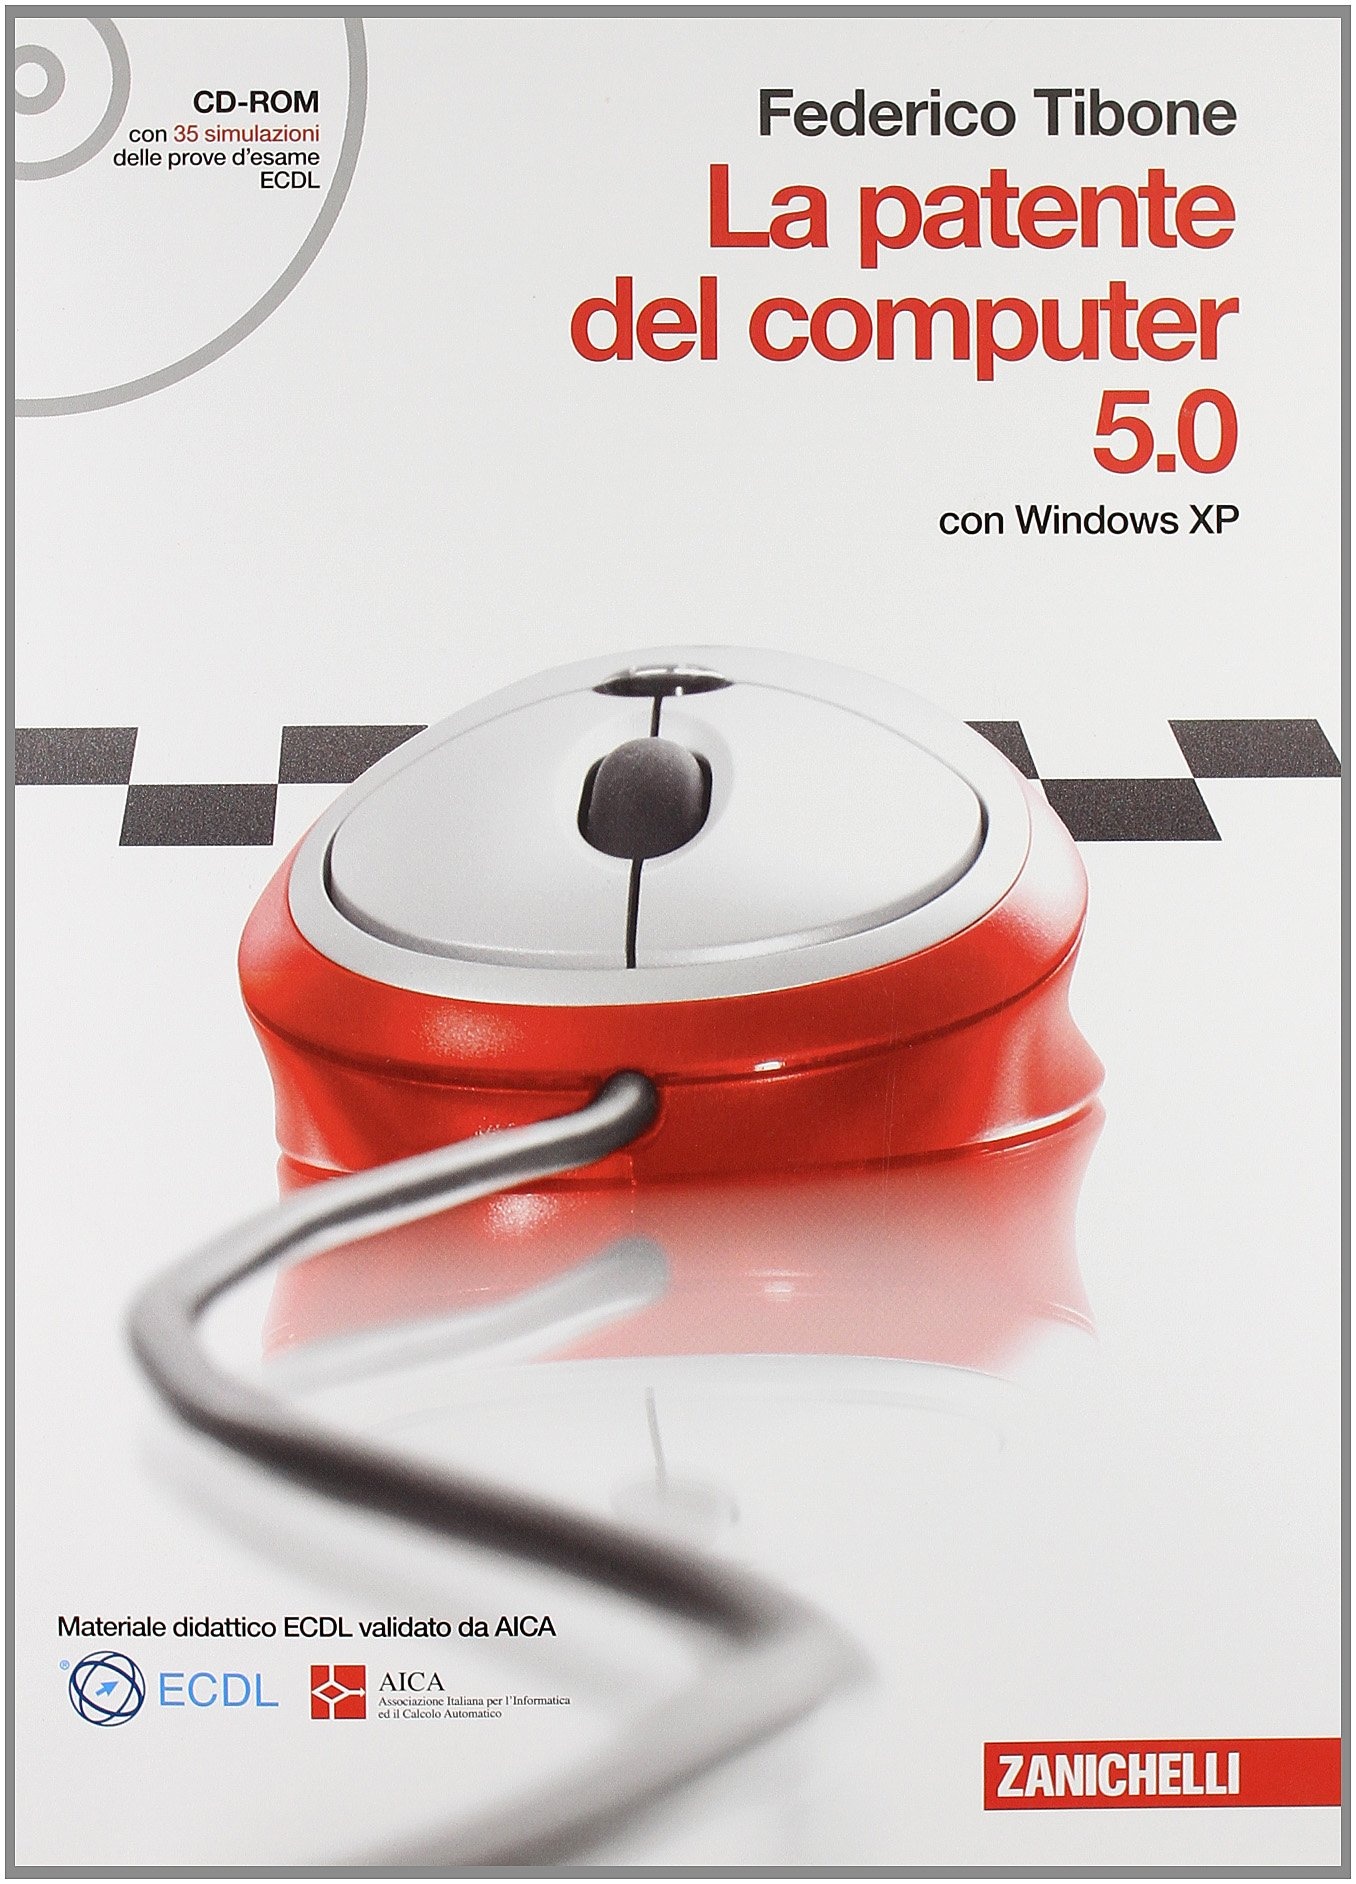 La patente del computer 5.0 con Windows XP Copertina flessibile – 3 mar 2009 Federico Tibone Zanichelli 8808063739